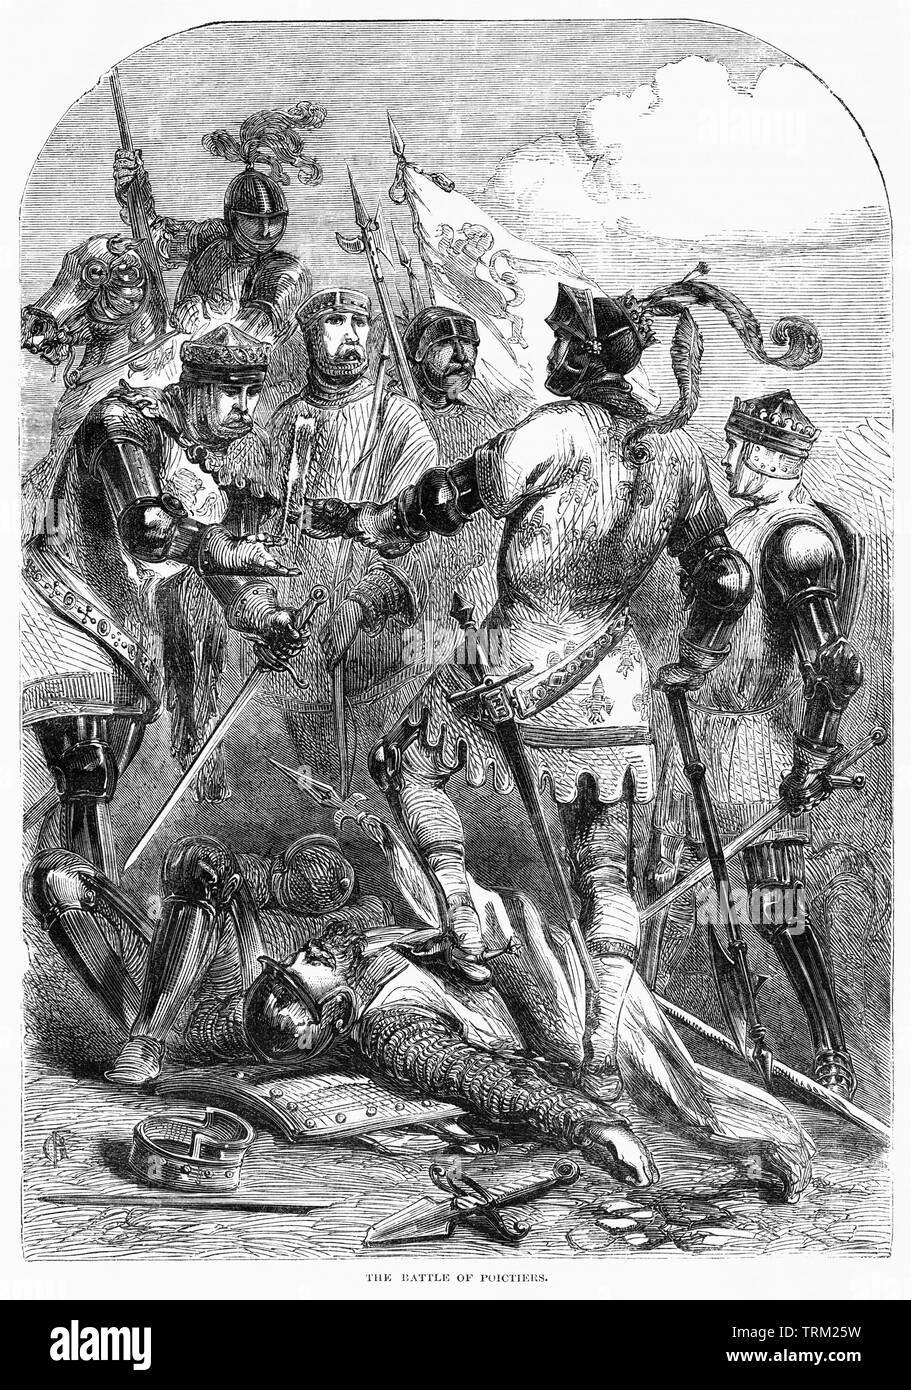 The Battle of Poictiers, Illustration from John Cassell's Illustrated History of England, Vol. I from the earliest period to the reign of Edward the Fourth, Cassell, Petter and Galpin, 1857 - Stock Image